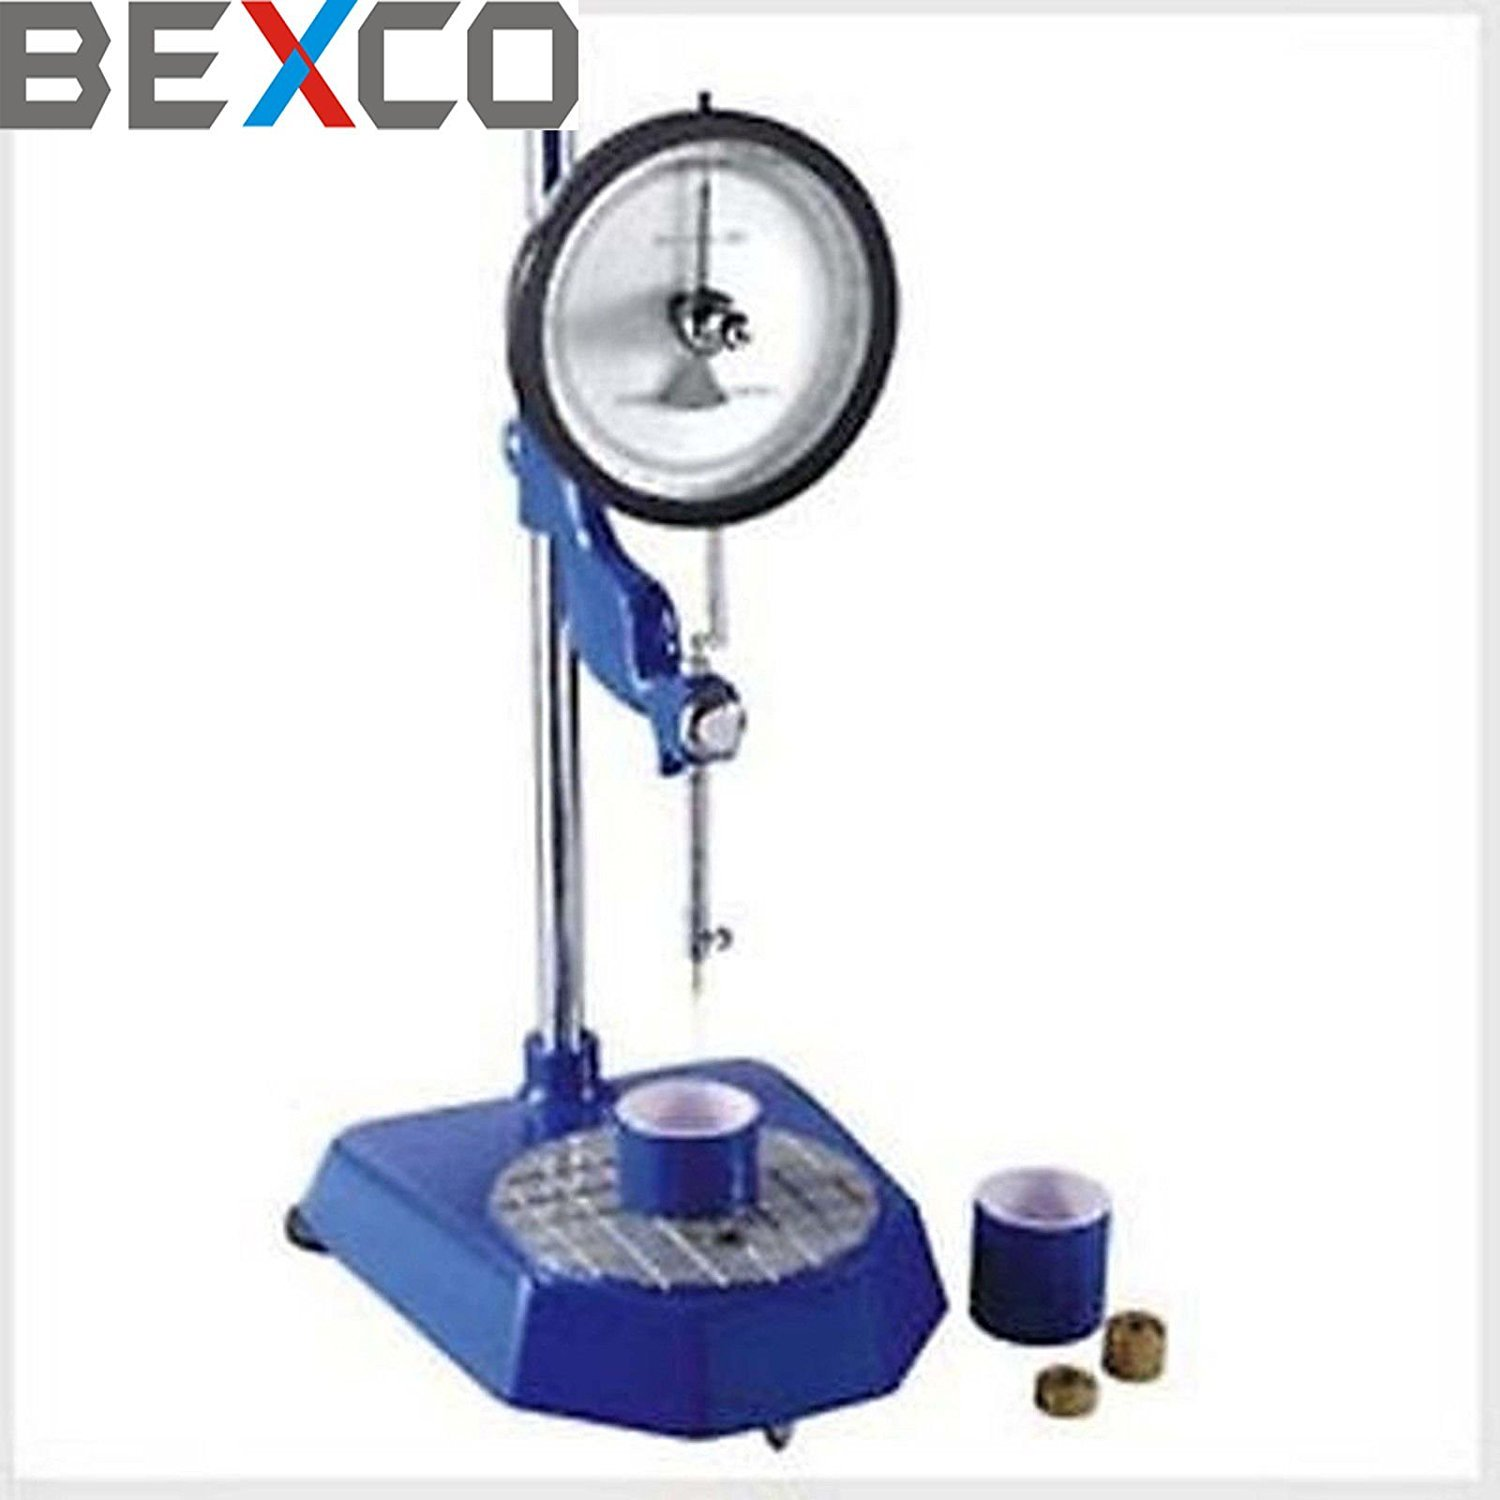 Top Quality Heavy Duty BEXCO BRAND Standard Penetrometer